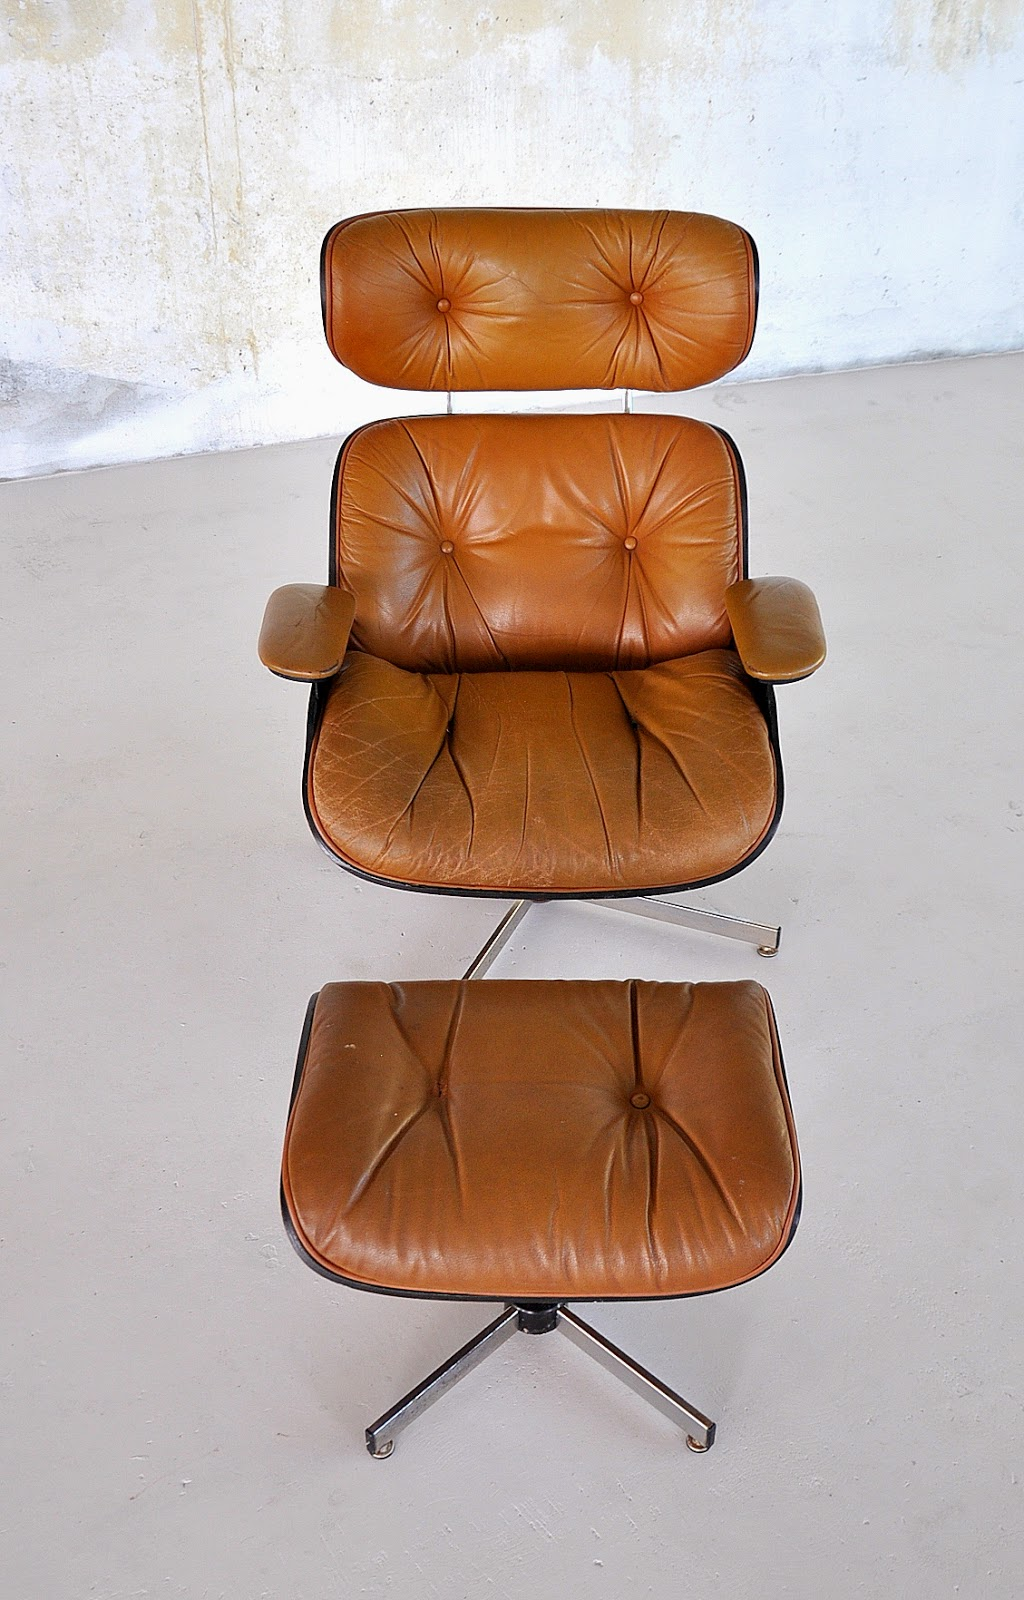 Eames Lounge Chair Original Select Modern: Eames Leather Lounge Chair & Ottoman